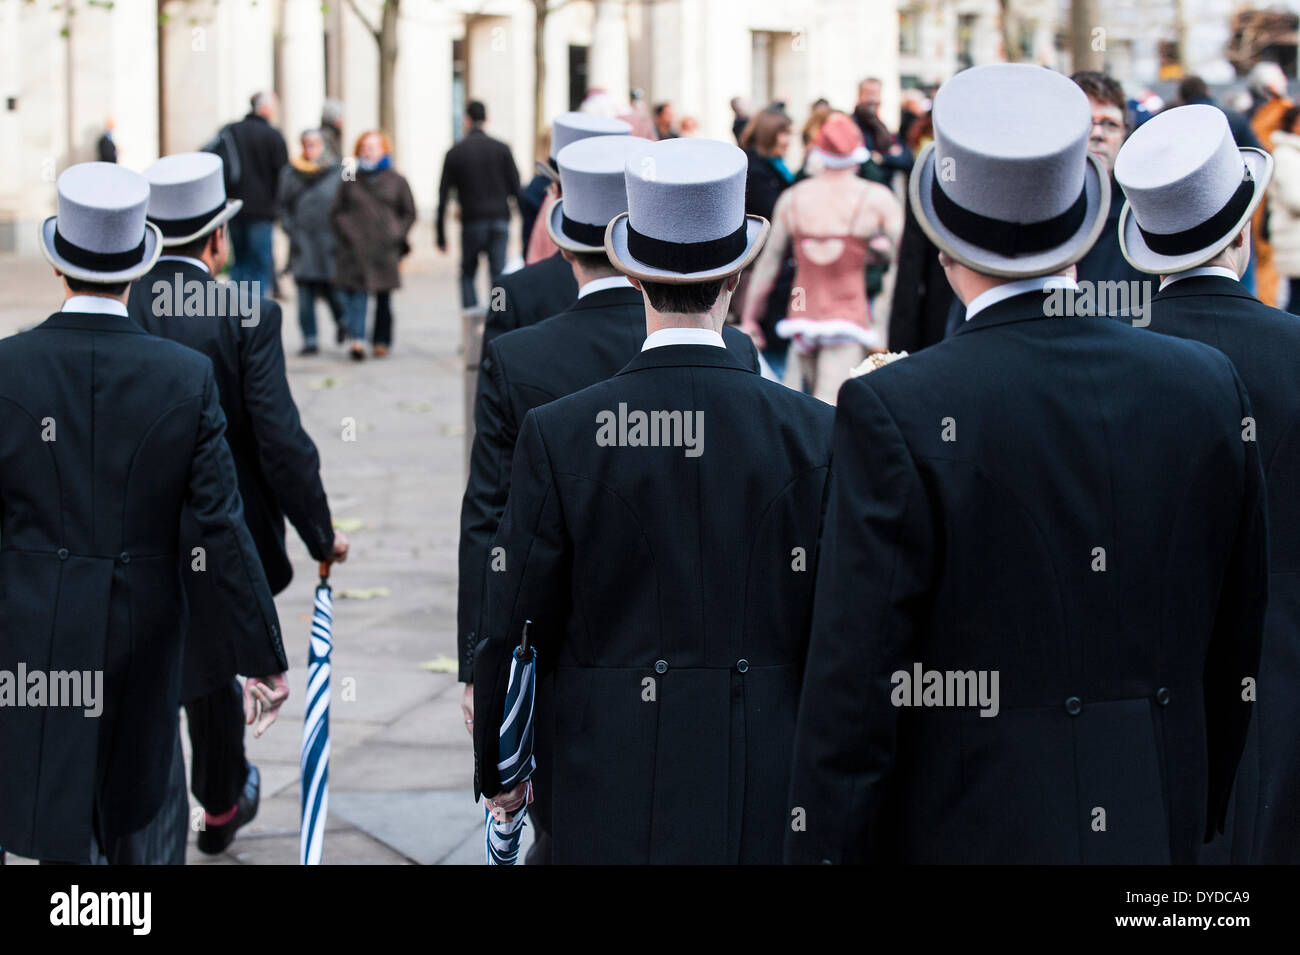 A group of men wearing top hats on their way to a wedding. - Stock Image